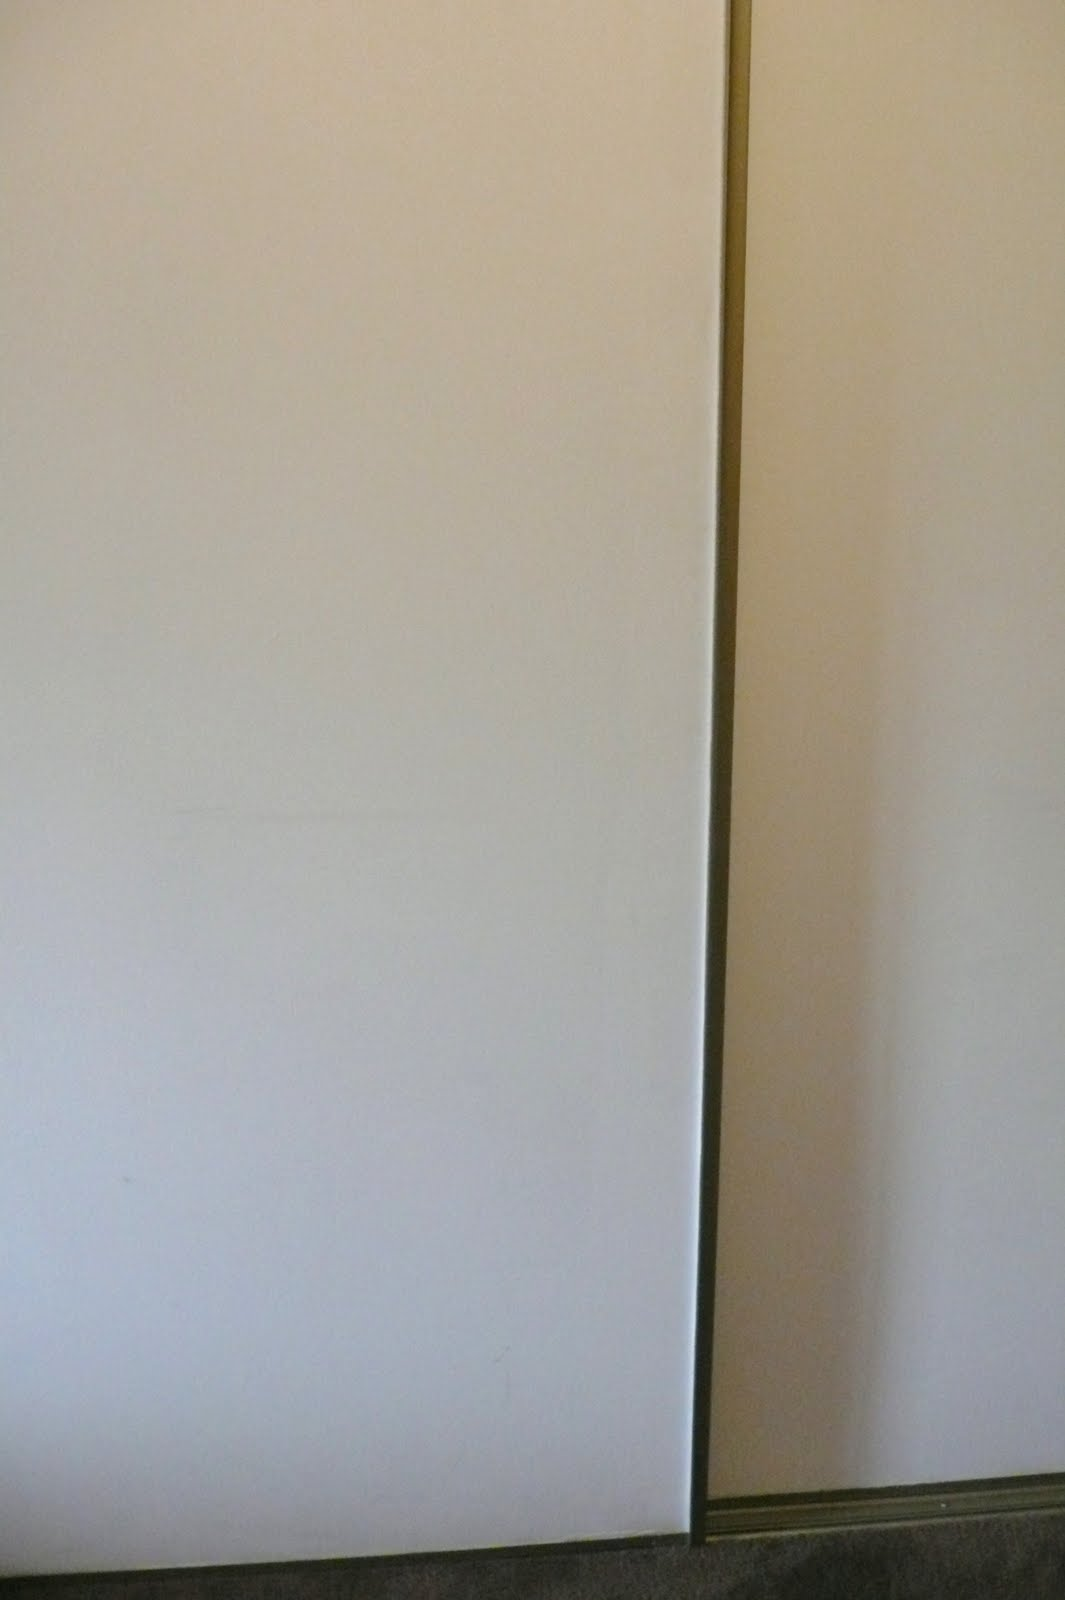 How To Wallpaper Flat Panel Sliding Closet Doors By Tiffany Teske